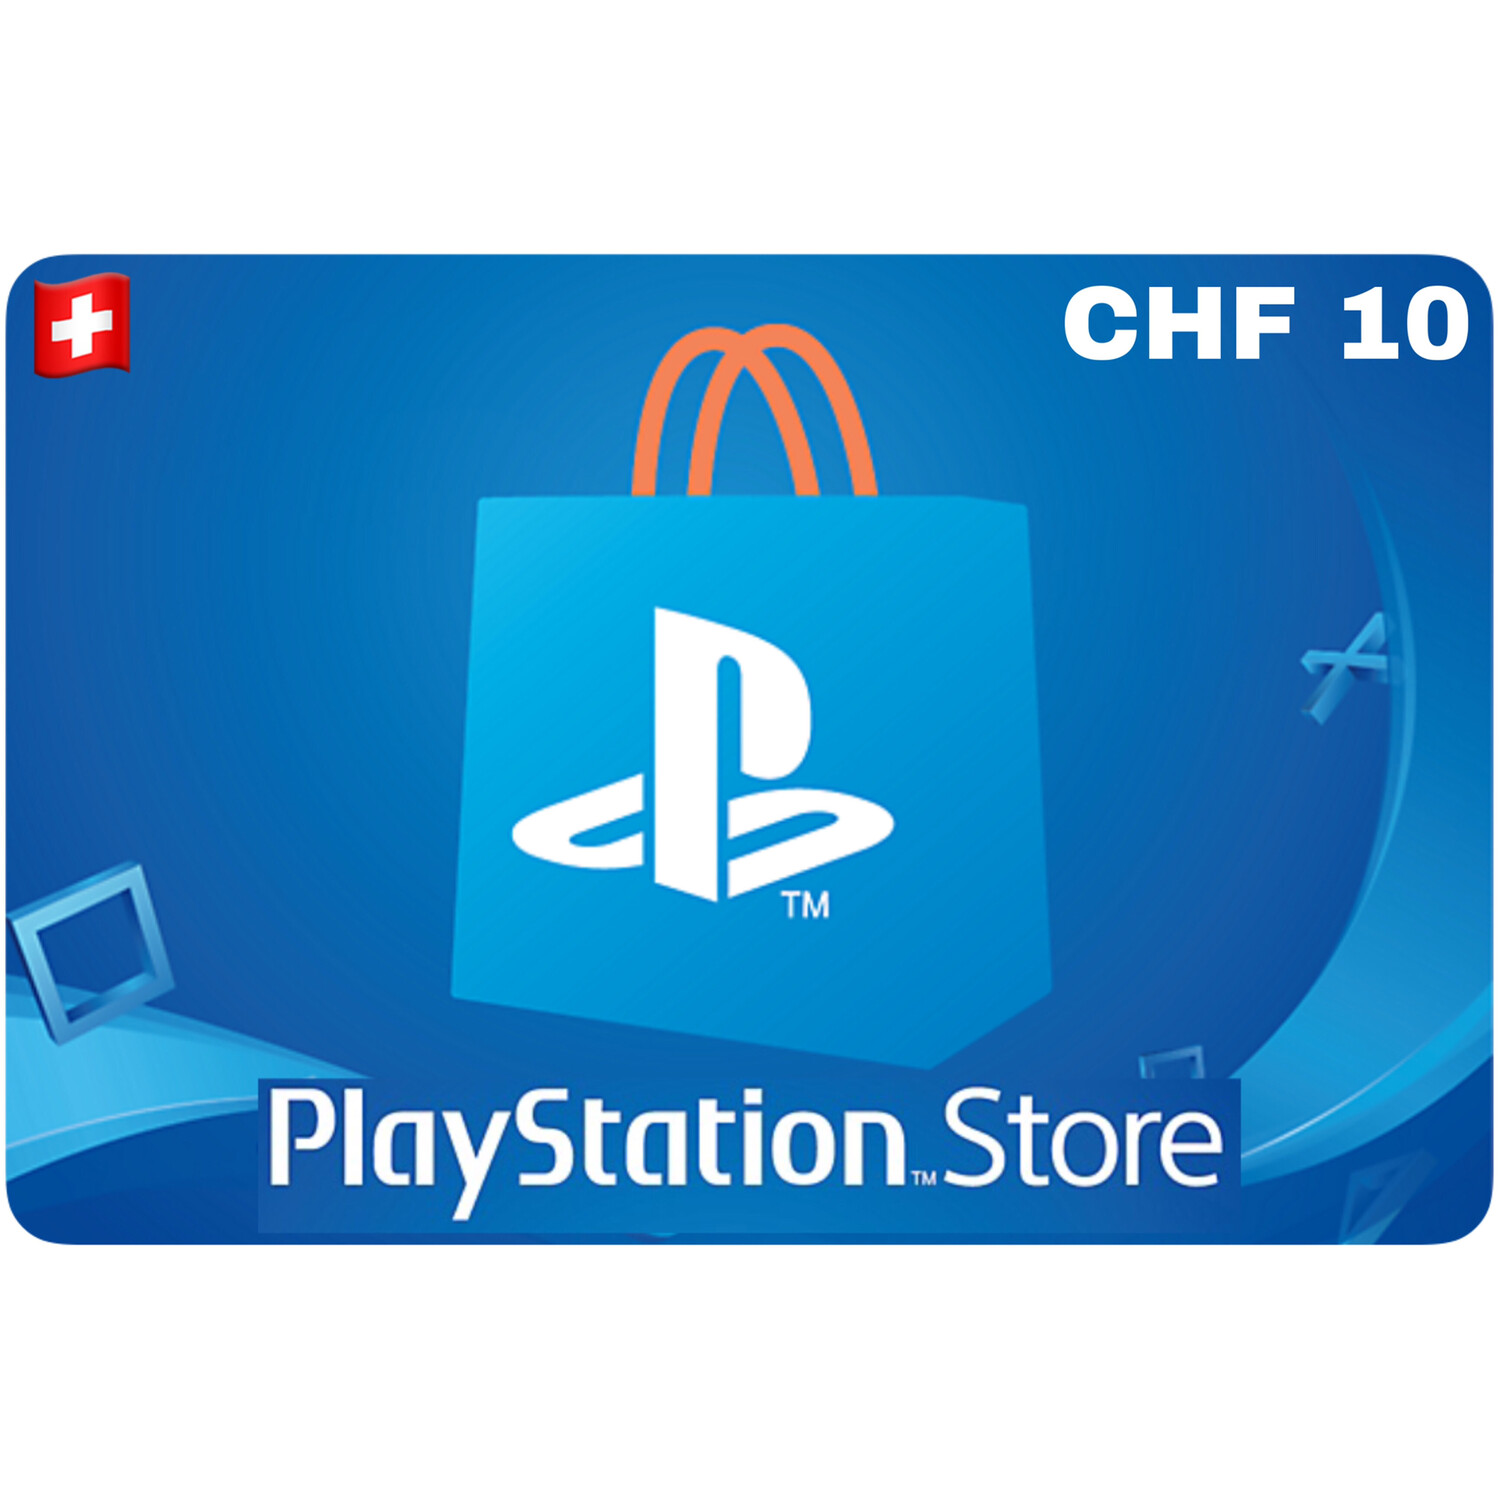 Playstation Store Gift Card Switzerland CHF 10